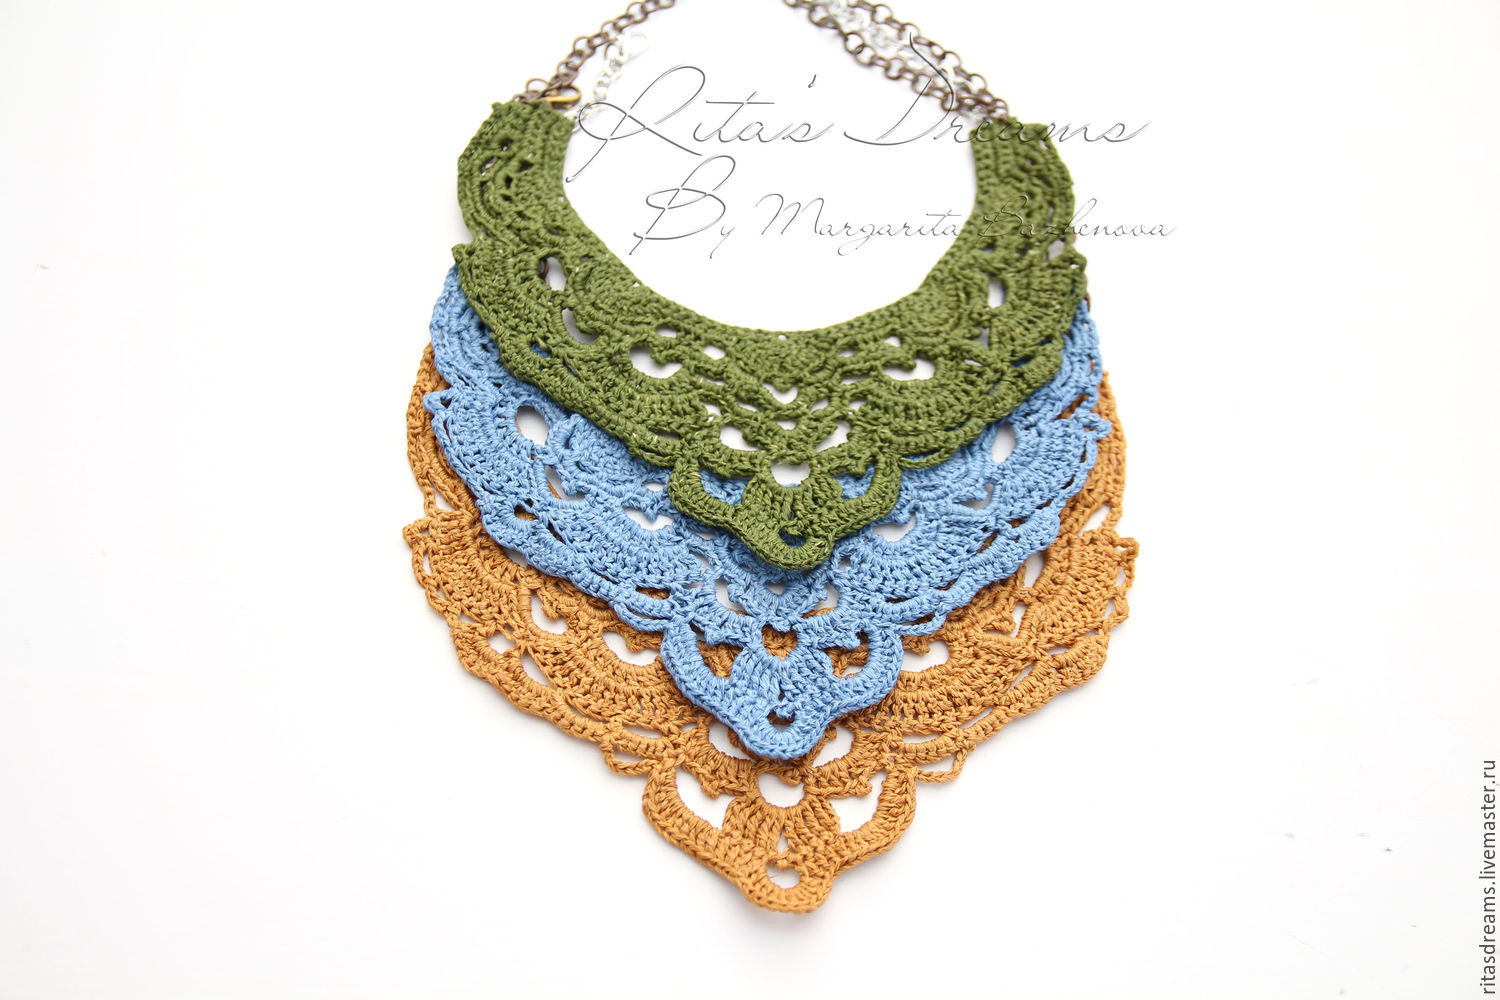 Easy openwork necklace made of natural linen is available in three color options: grass green, light denim blue and the color of fallen Golden-yellow foliage.